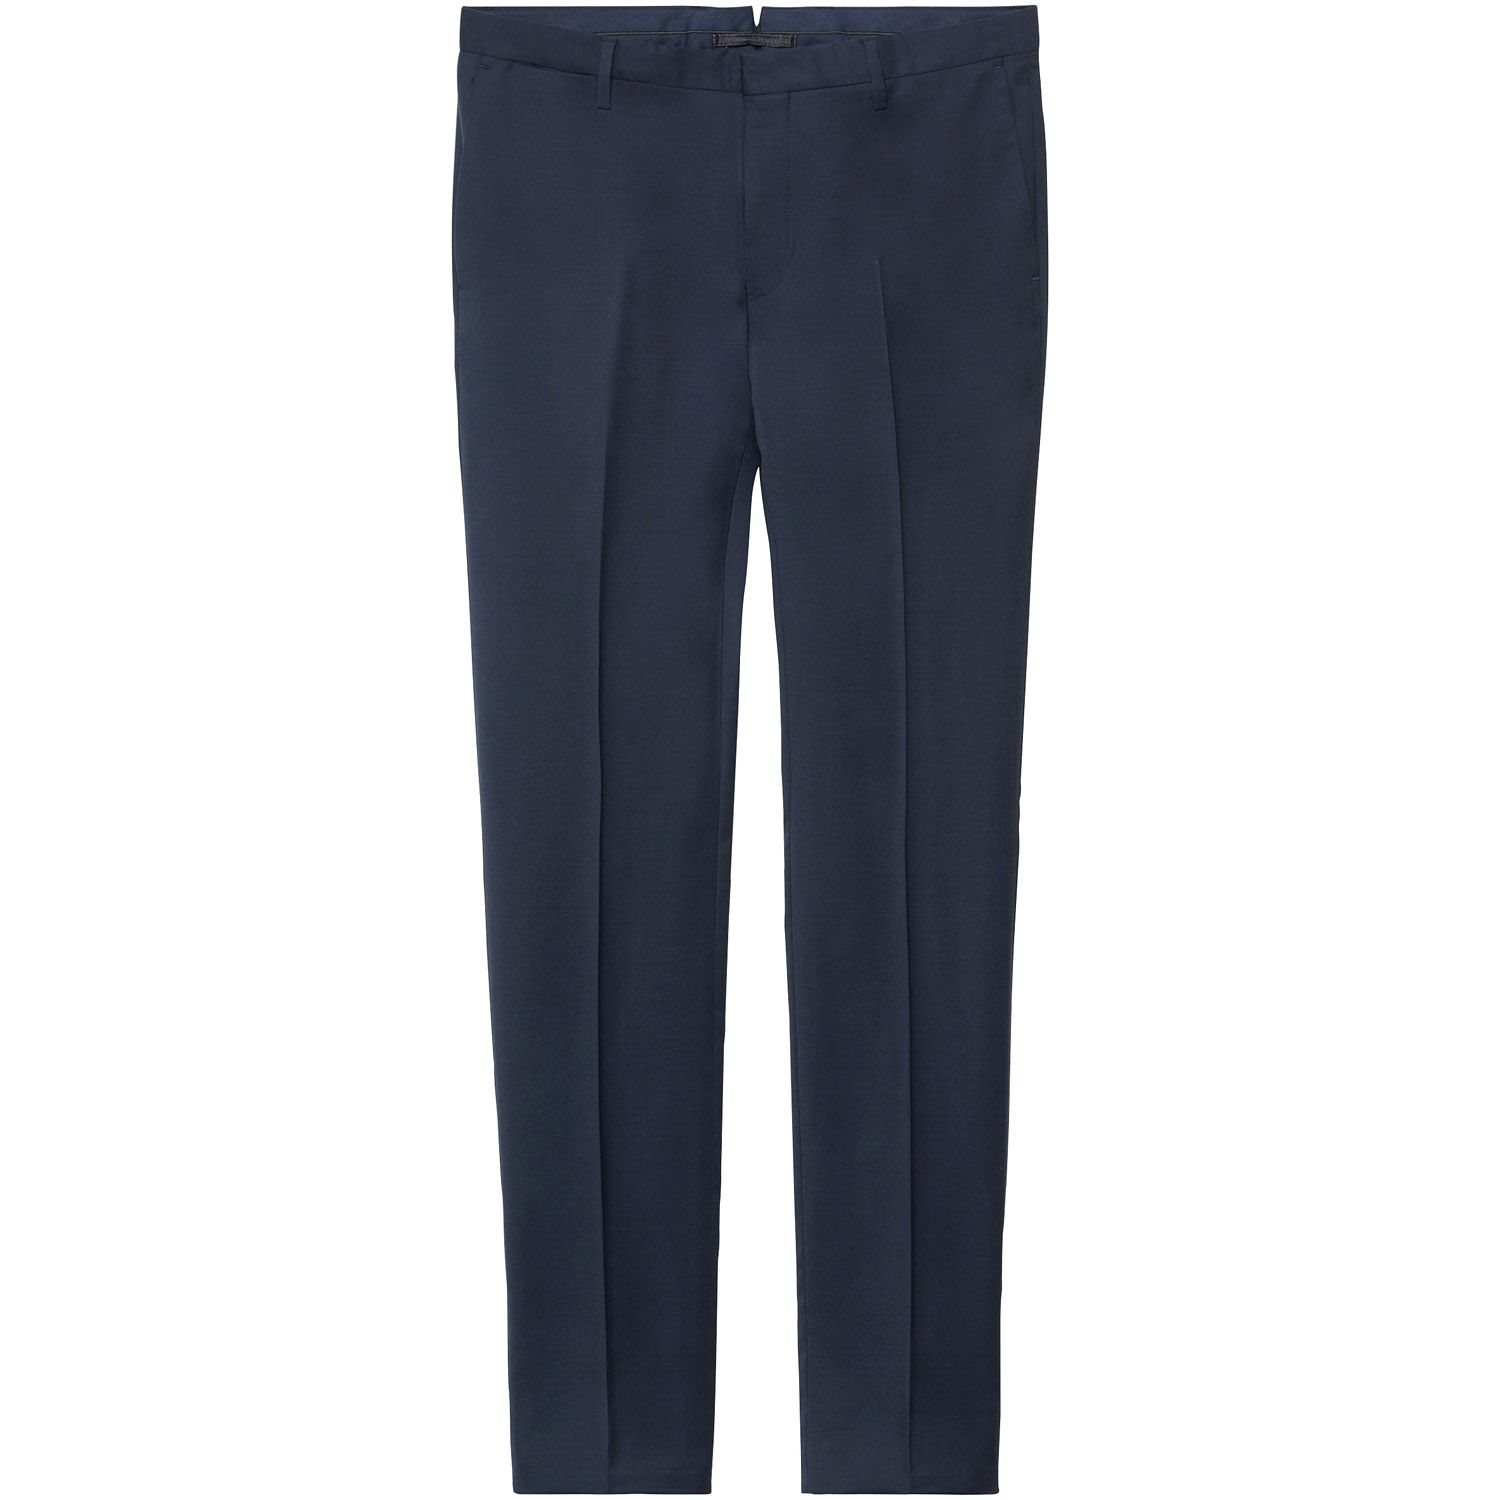 GANT Ink Diamond G Tailored Fit Travel Trousers